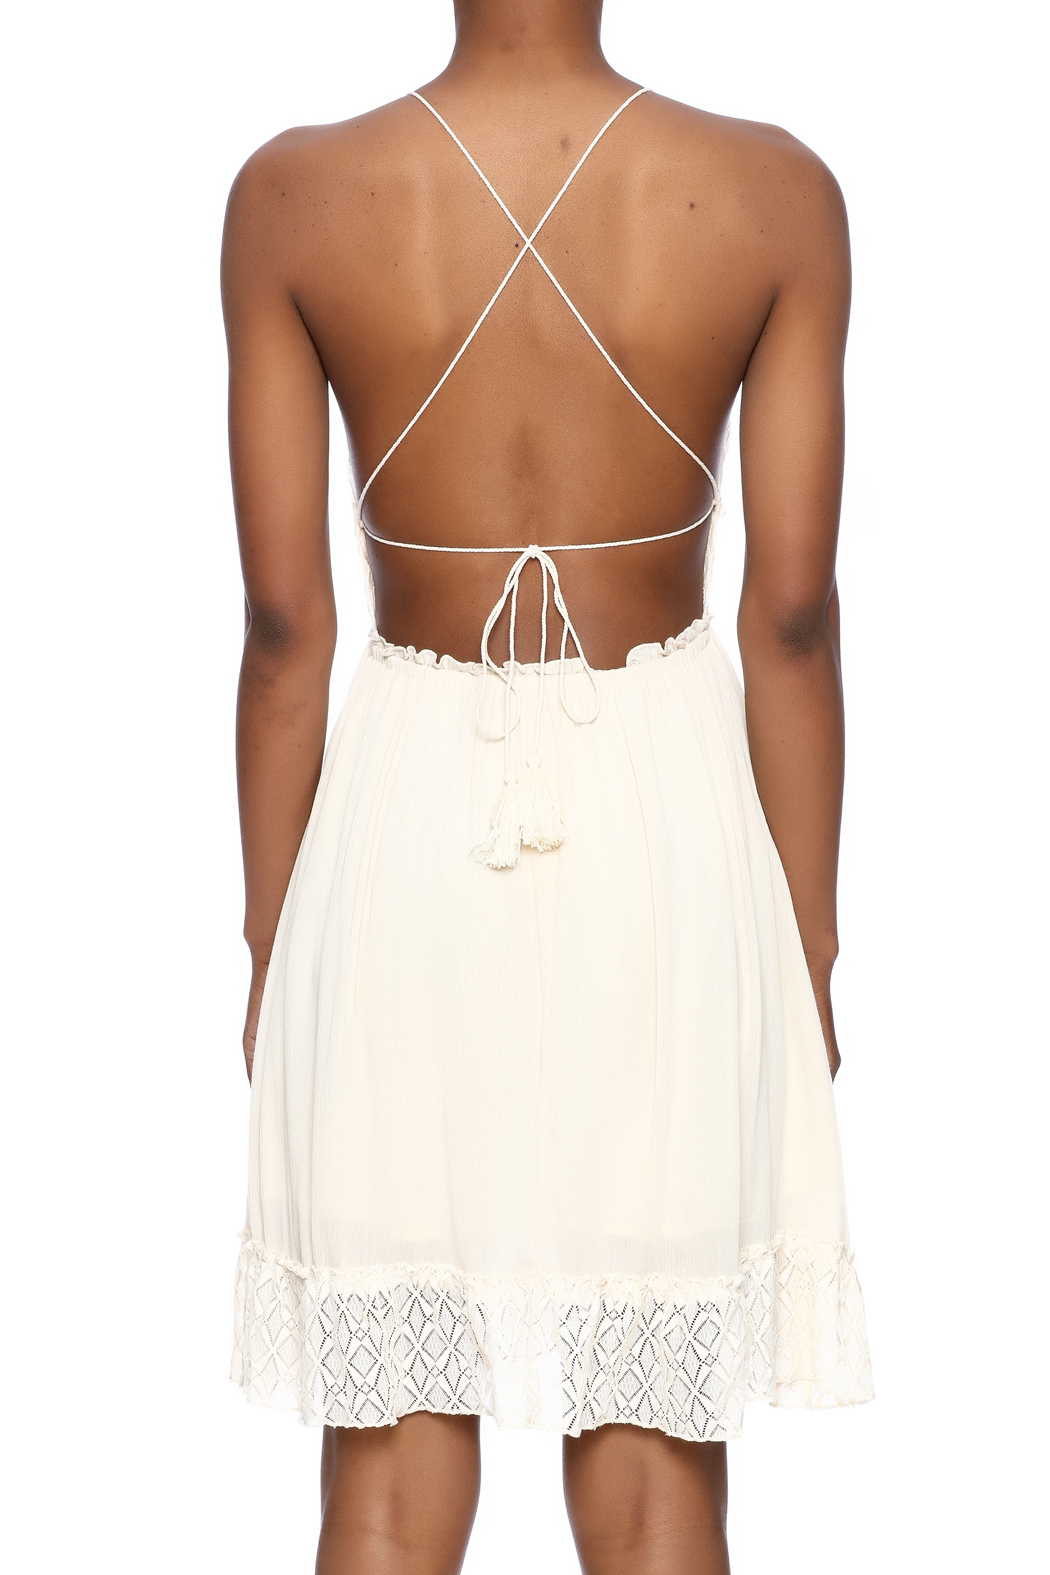 Illa Illa Natural Hippie Dress from Connecticut by Stella ...